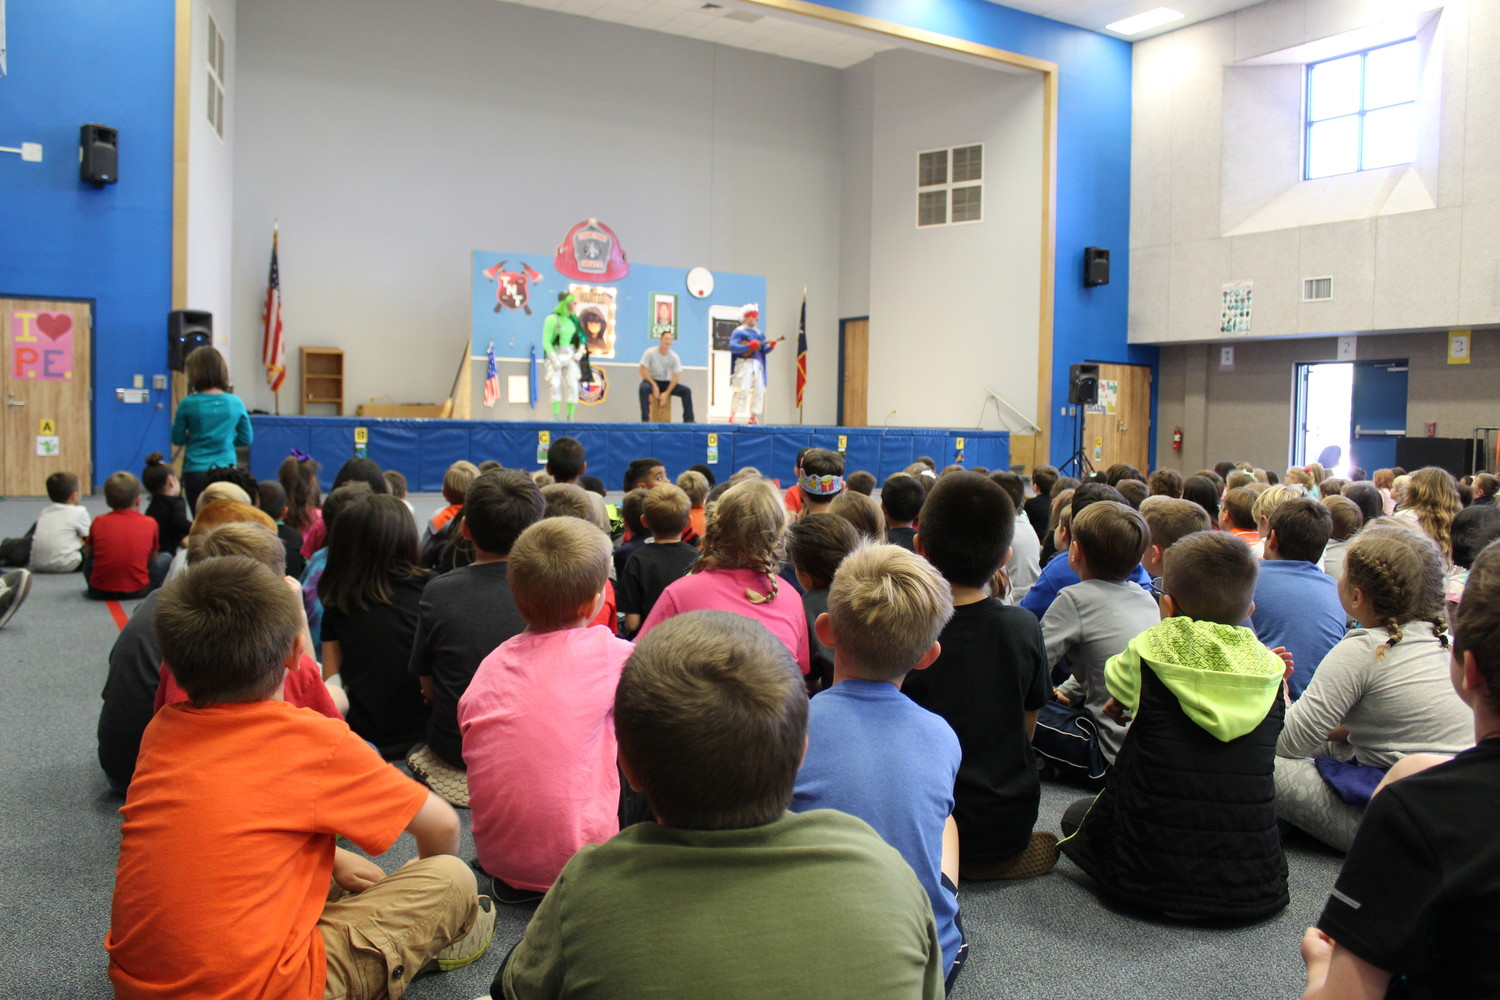 Students at Ada Mae Faubion Elementary School watch as the Cedar Park Fire Dept. HEATS team perform a sketch about fire safety, Tuesday, Oct. 17.